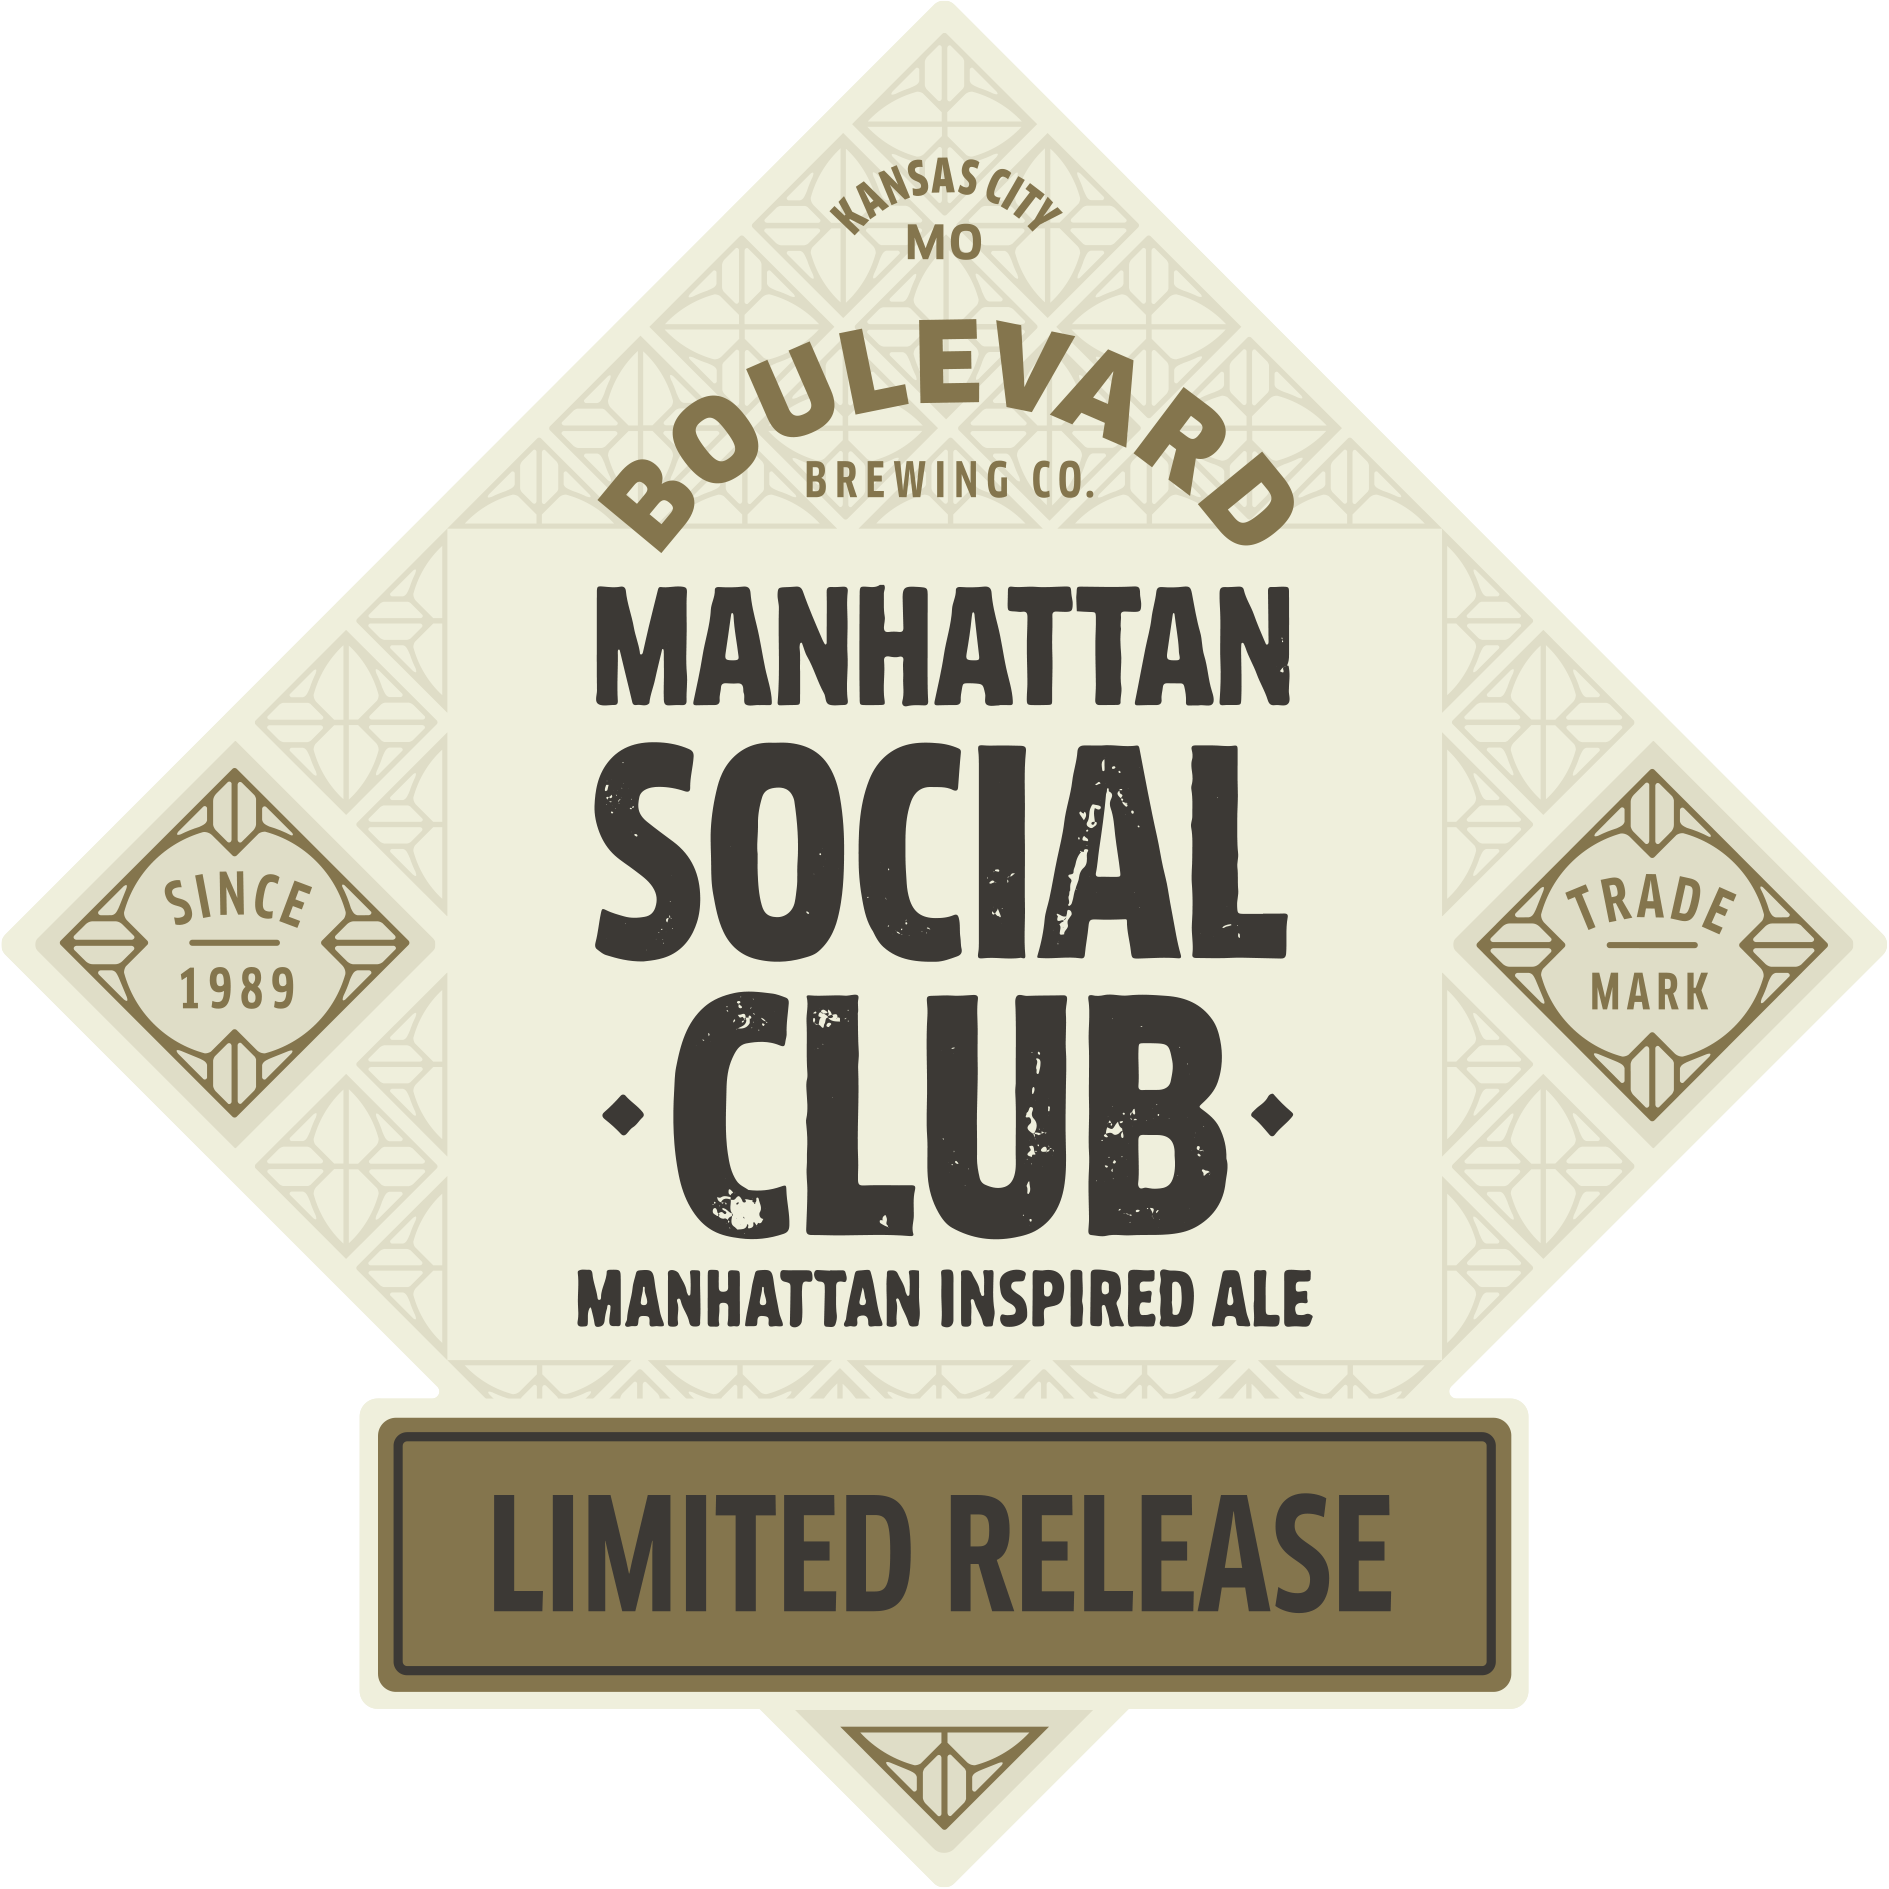 Manhattan Social Club